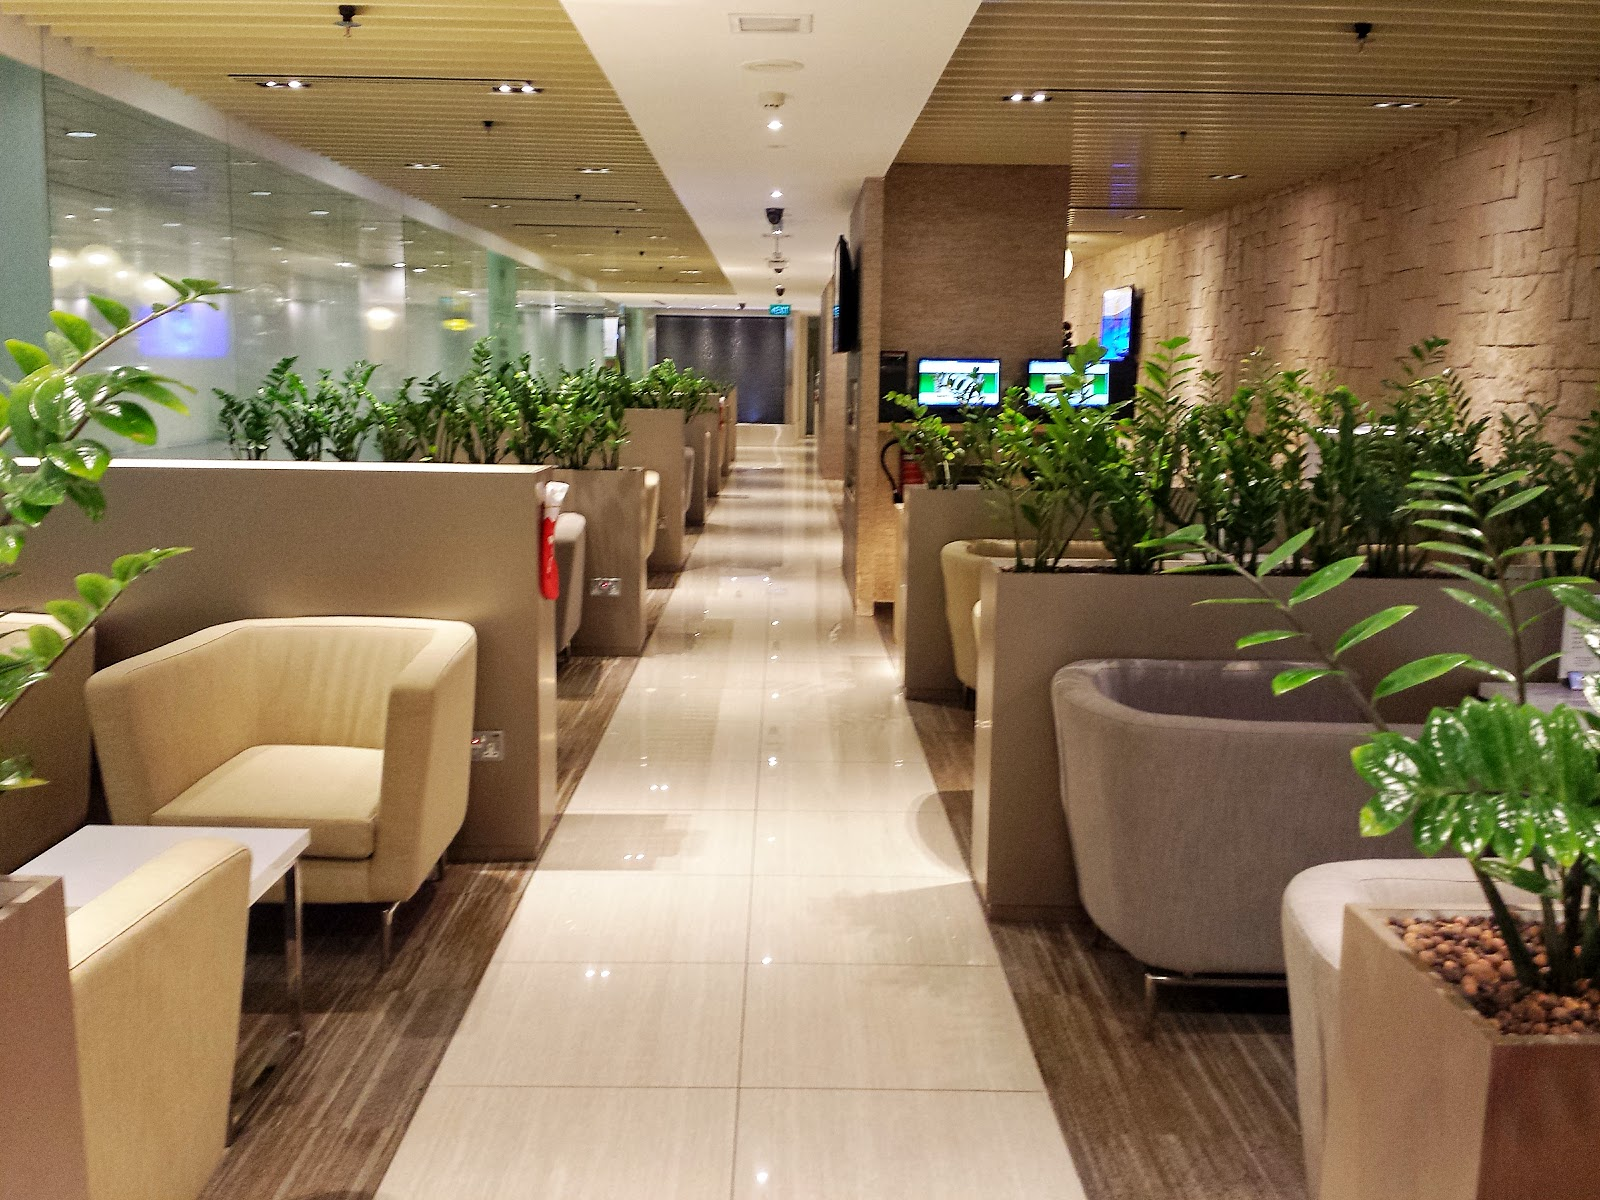 The Haven Singapore Changi Airport: Layover Stay in Singapore